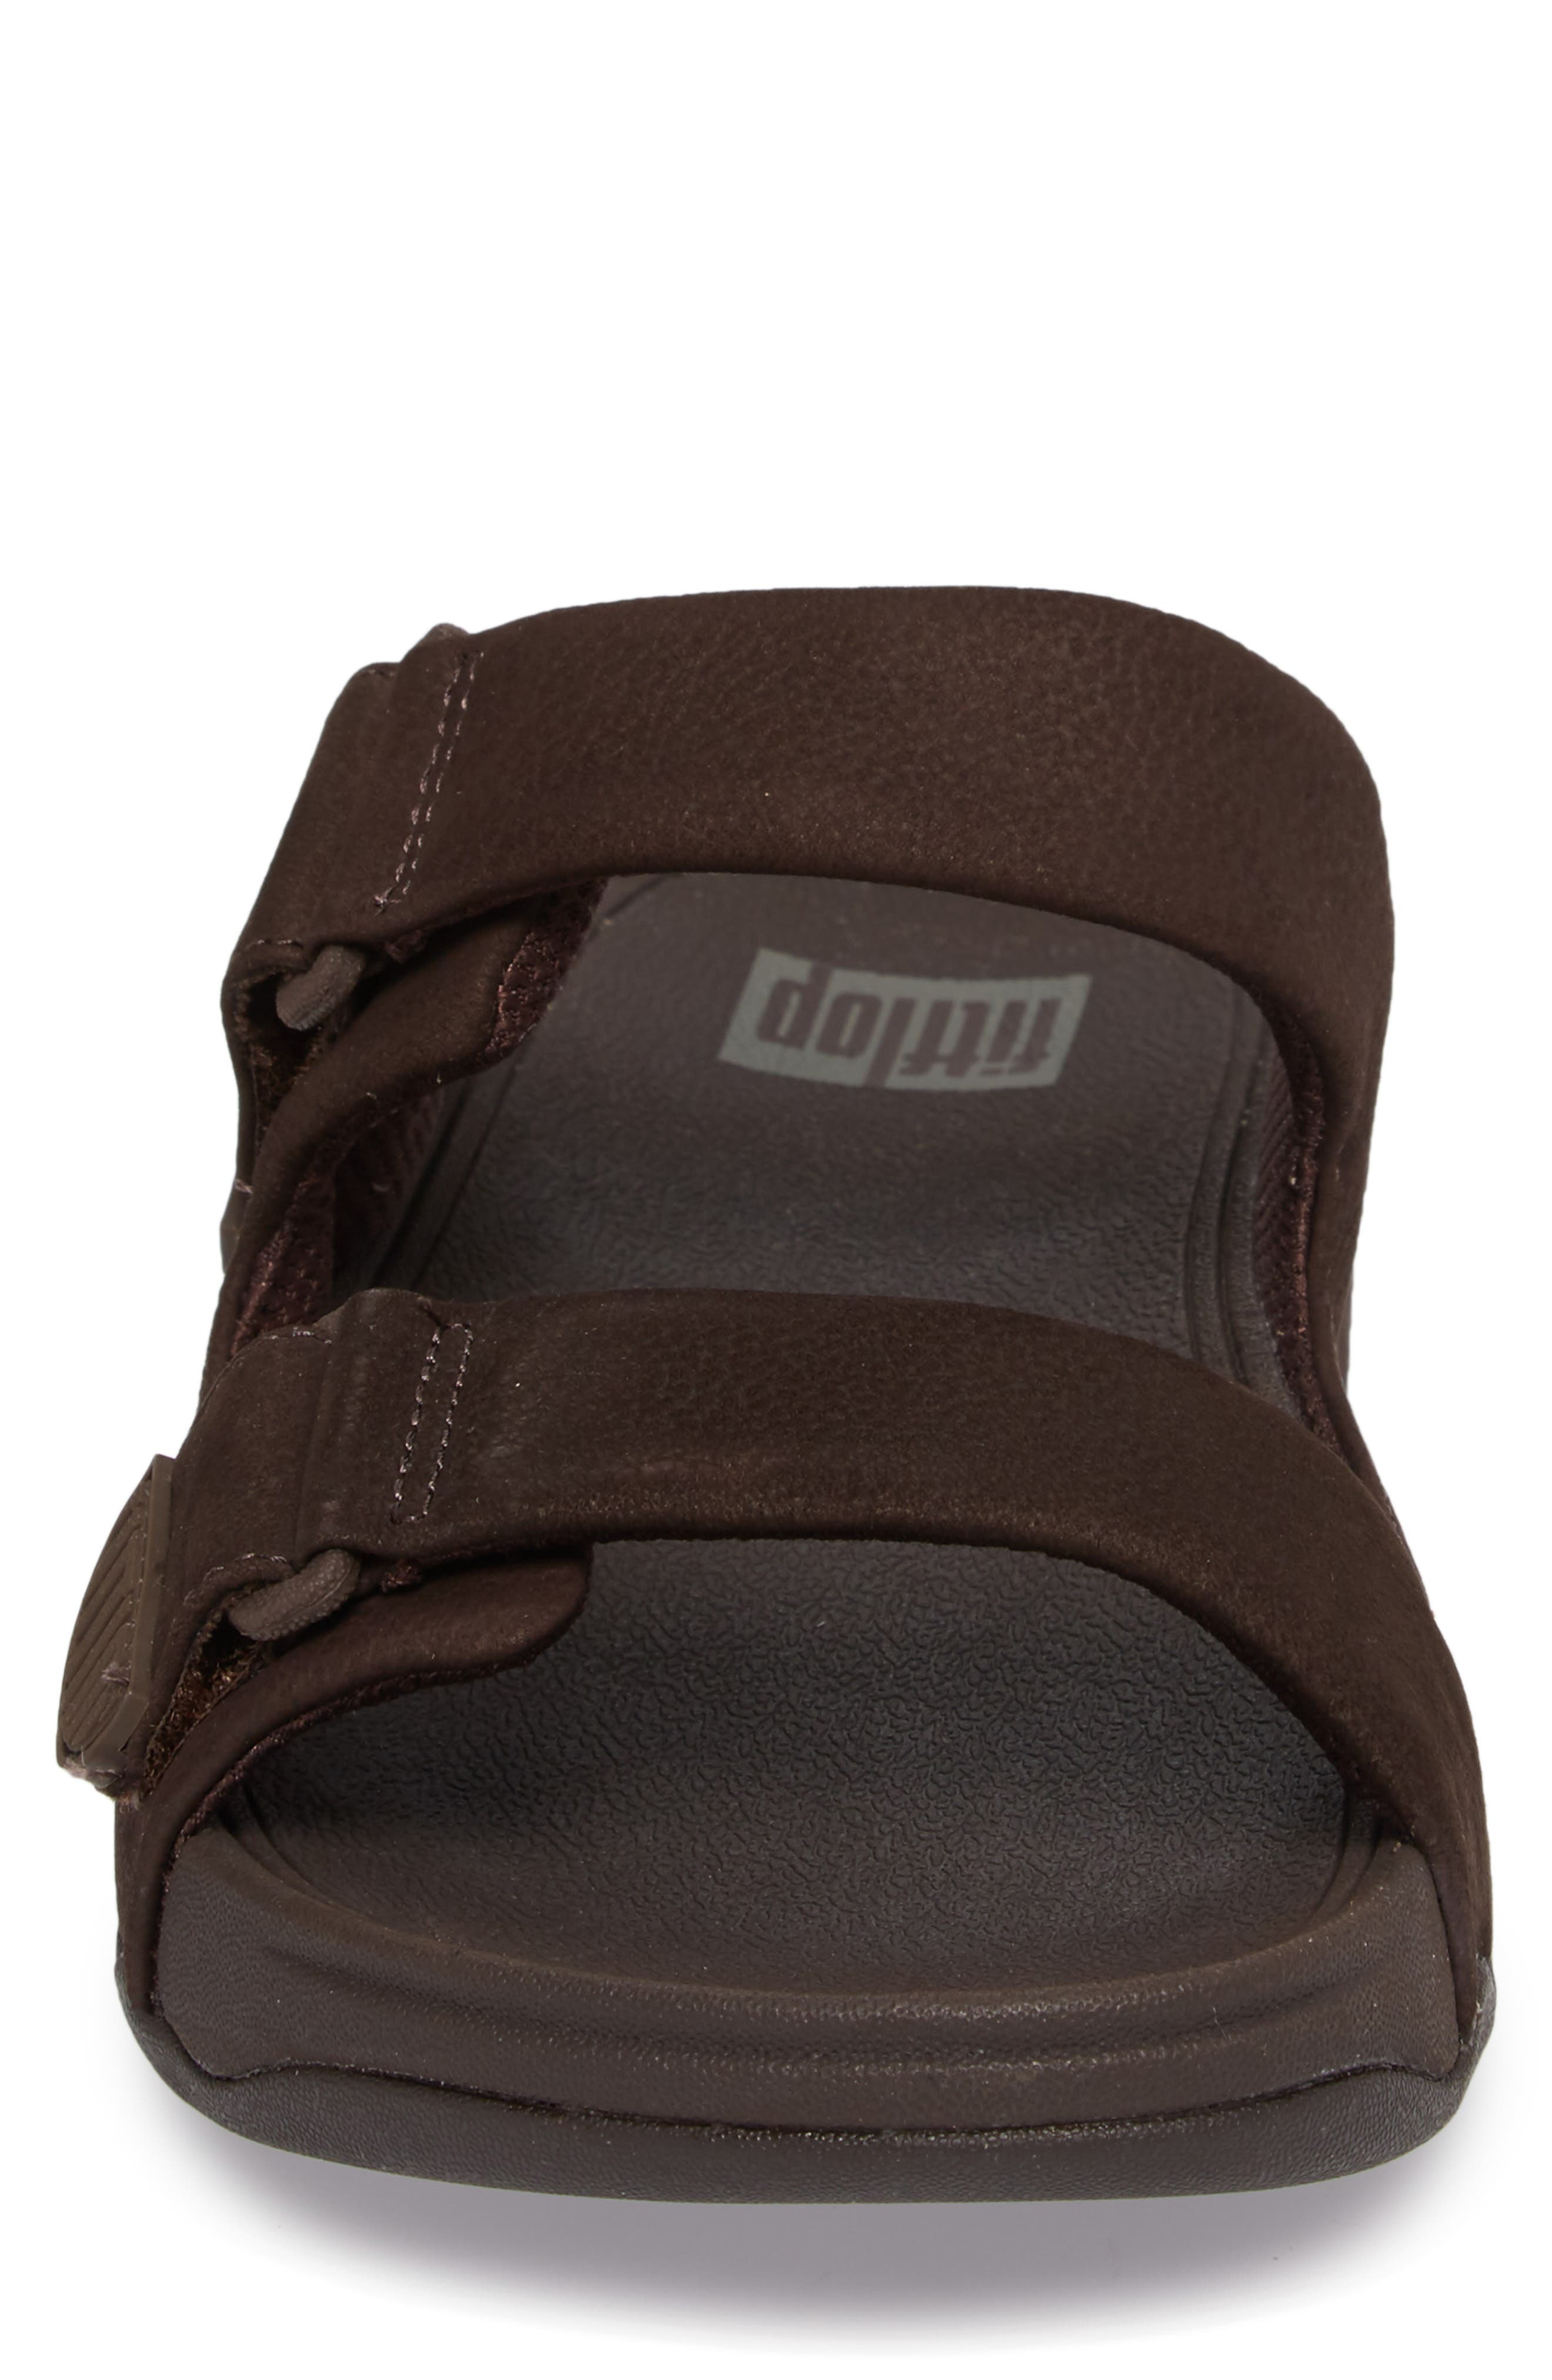 Gogh Sport Slide Sandal,                             Alternate thumbnail 4, color,                             Chocolate Brown